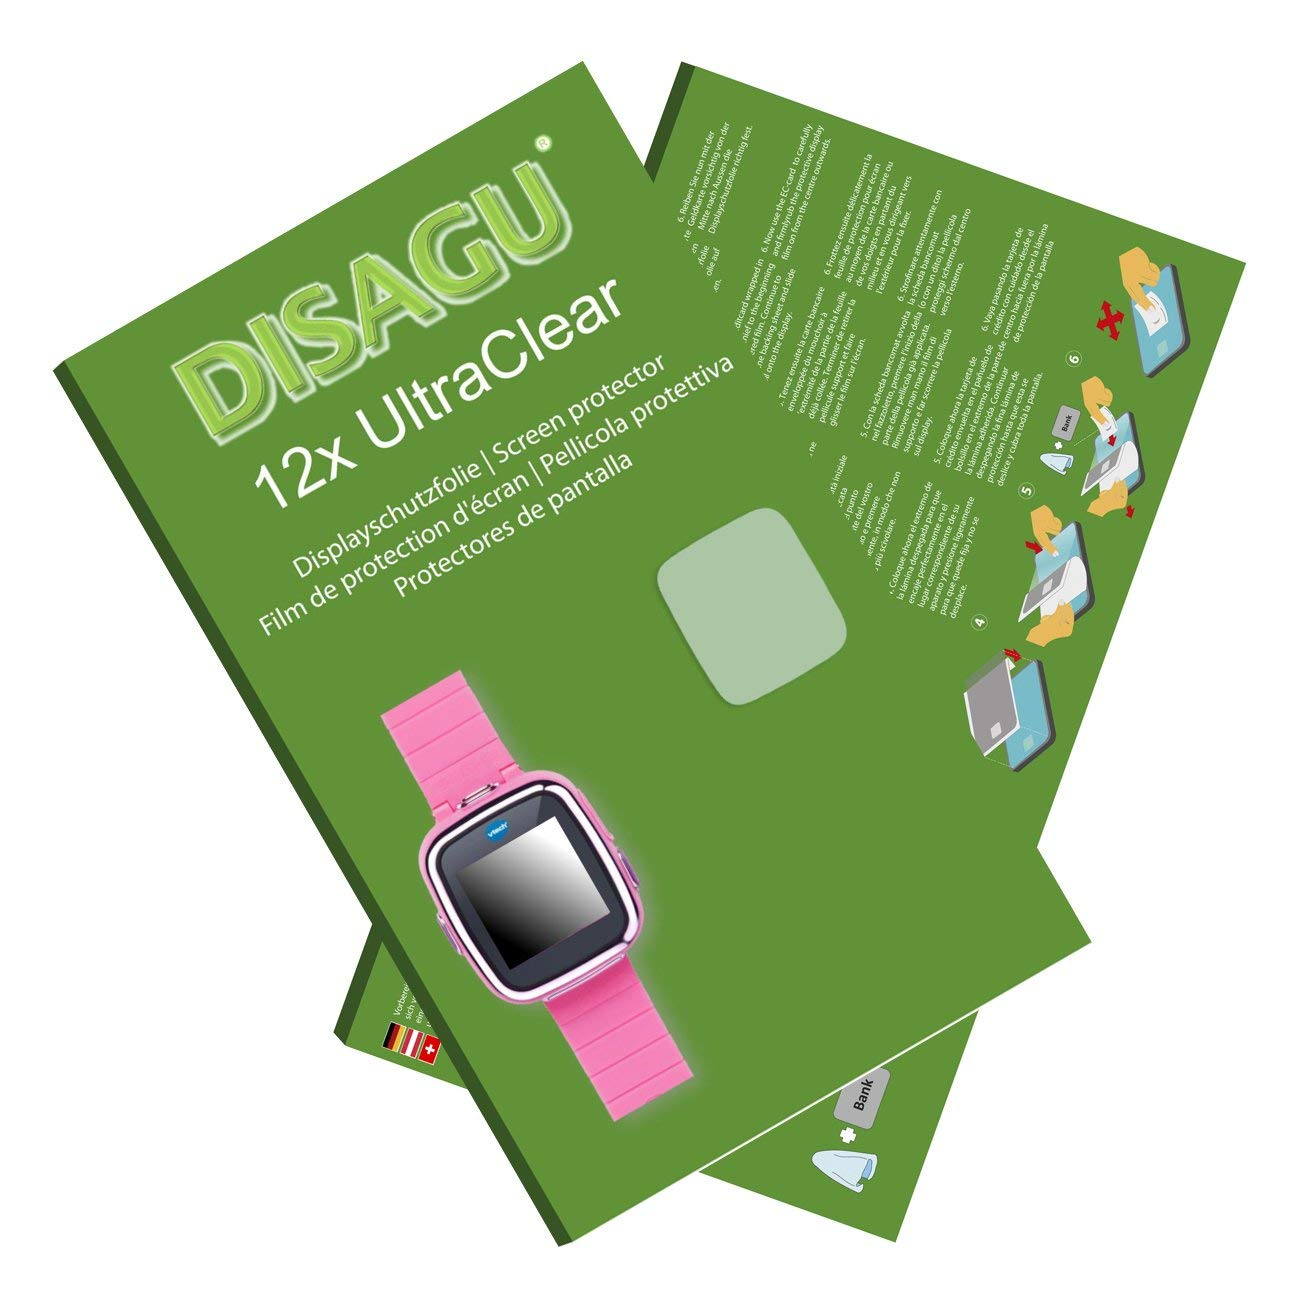 DISAGU 12x Ultra Clear Screen Protector for Vtech Kidizoom Smart Watch 2